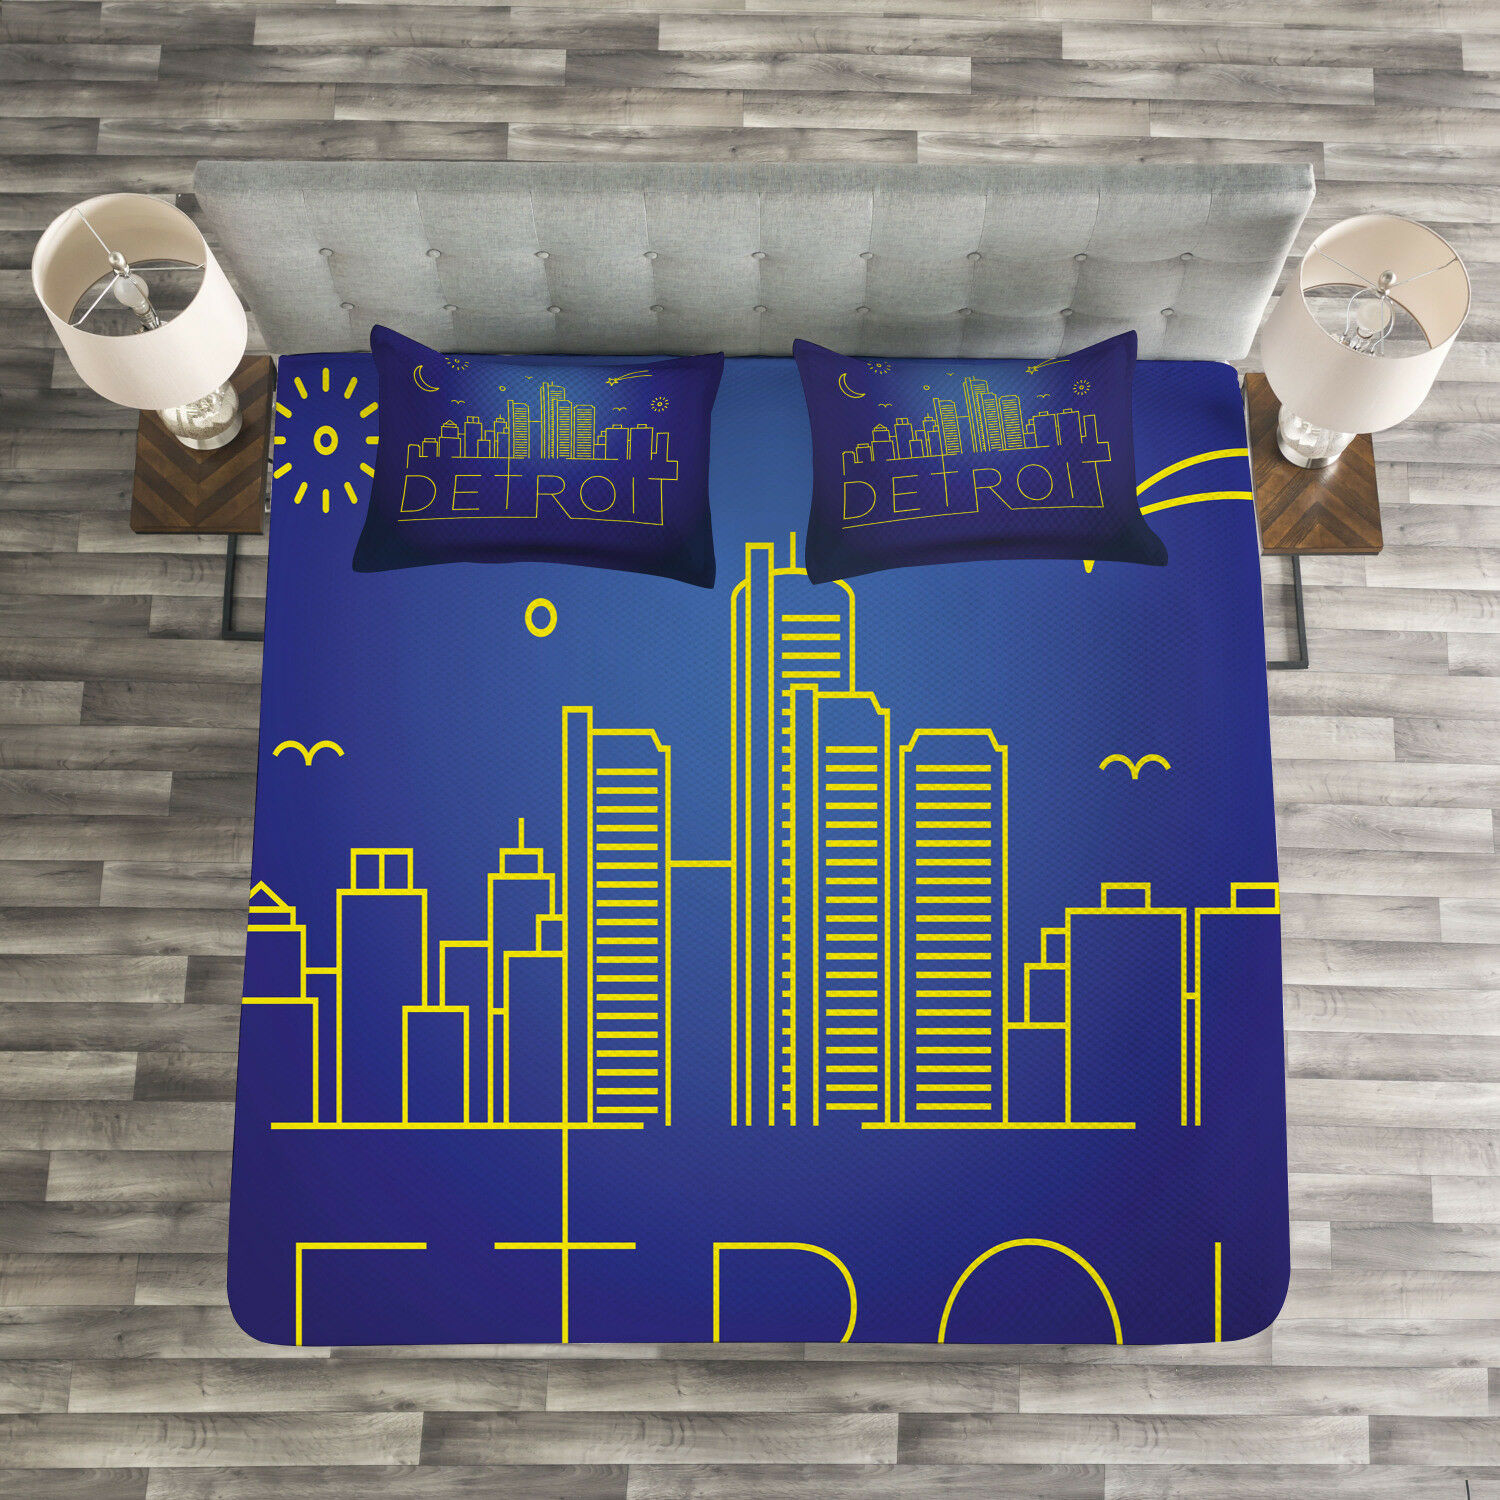 Detroit Quilted Bedspread & Pillow Shams Set, City Sky View Graphic Print